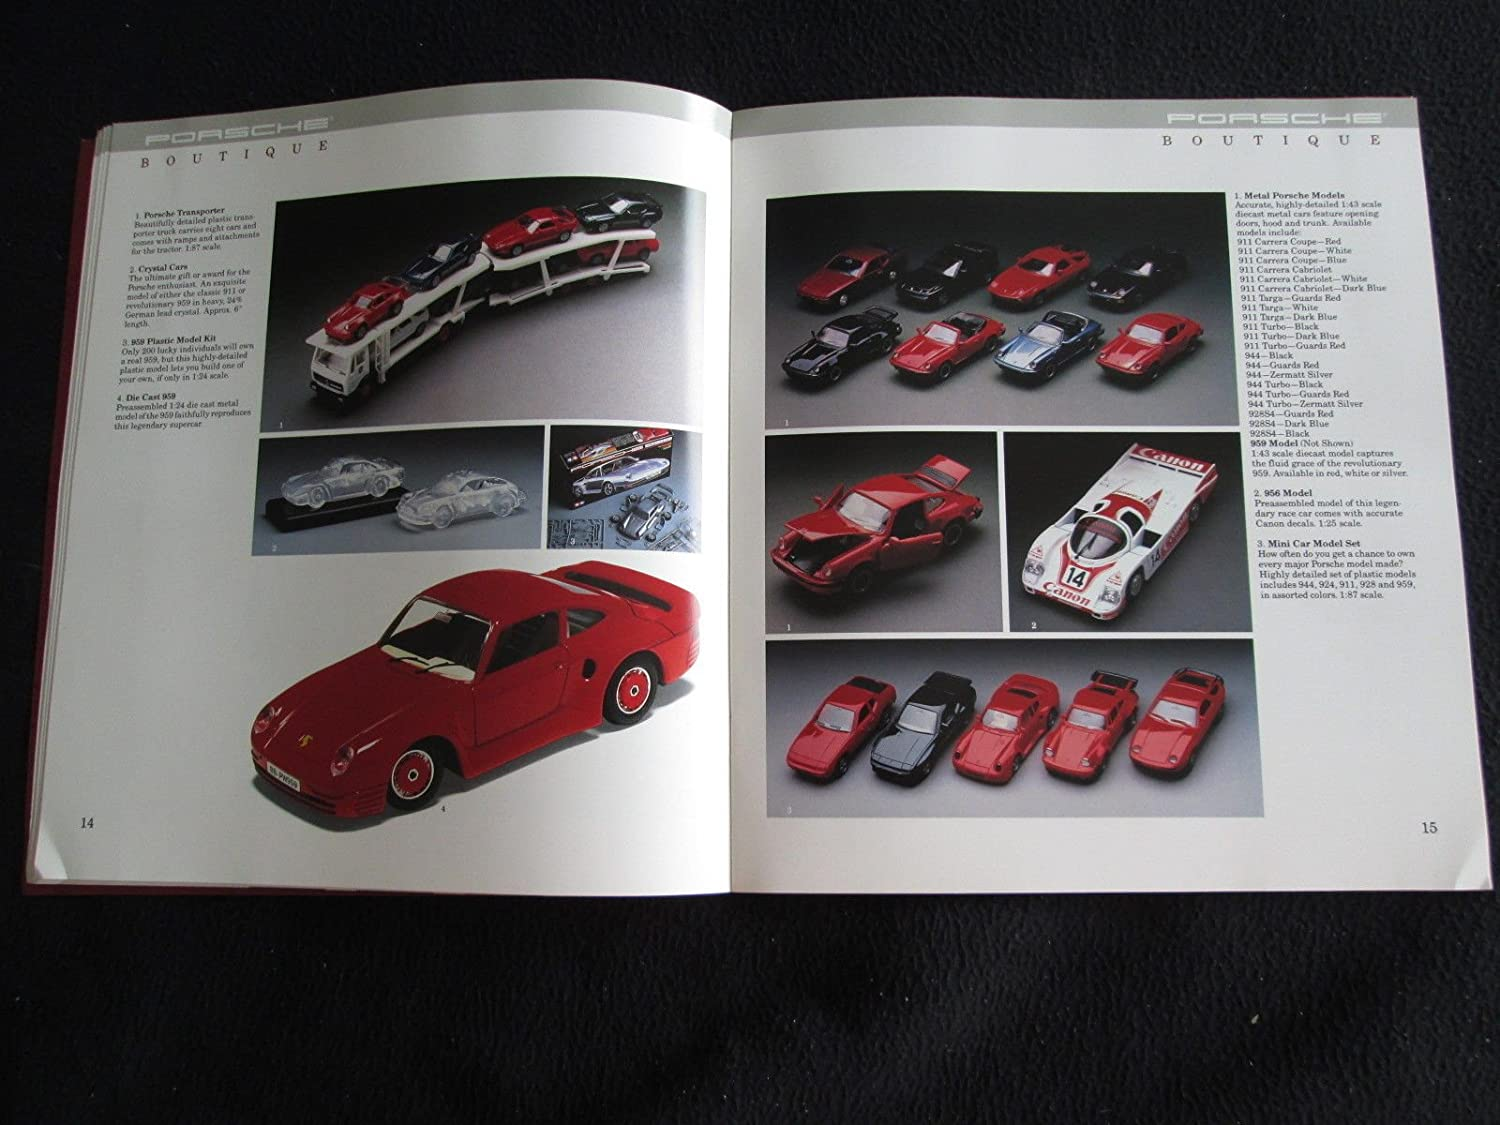 Amazon.com : 1989 PORSCHE BOUTIQUE & ACCESSORIES VINTAGE PRESTIGE COLOR SALES BROCHURE - USA - GORGEOUS ORIGINAL!! : Everything Else